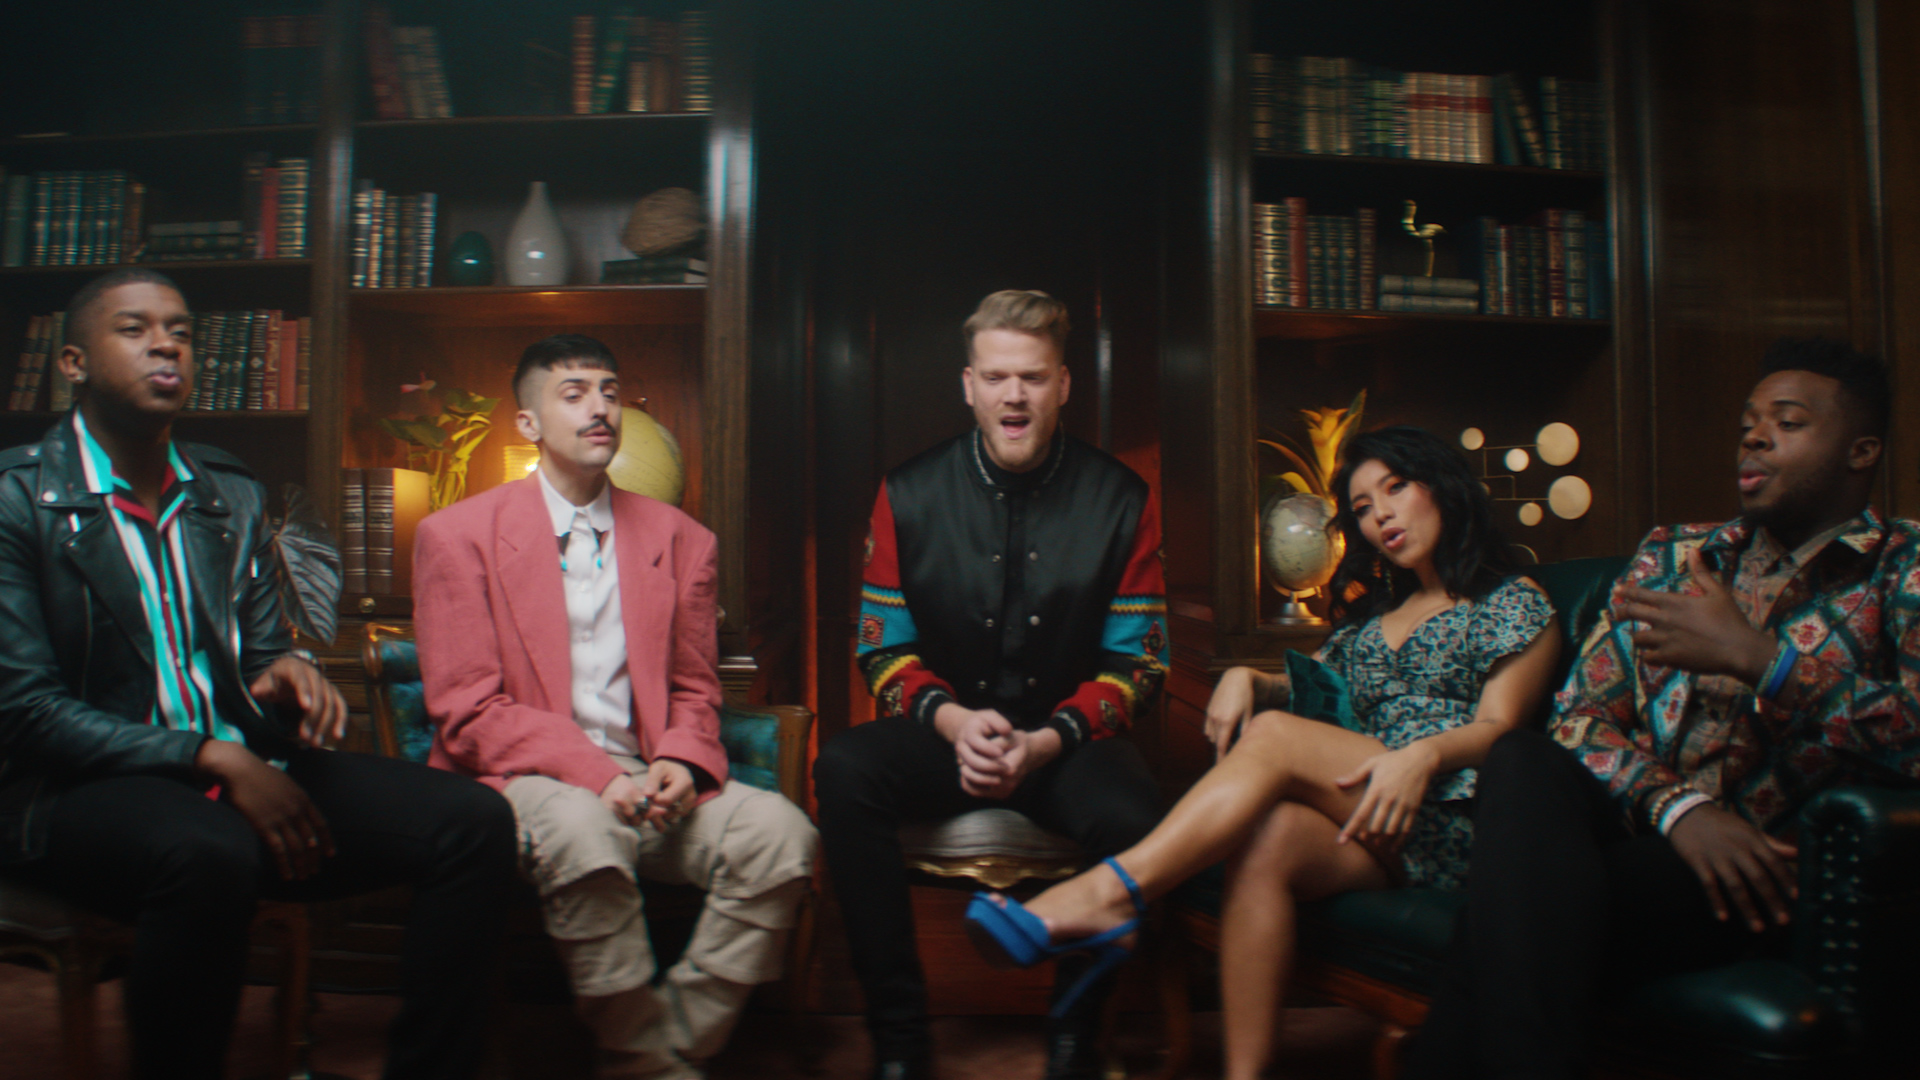 Pentatonix Official Website : HAVANA TRACK AND MUSIC VIDEO - OUT NOW!